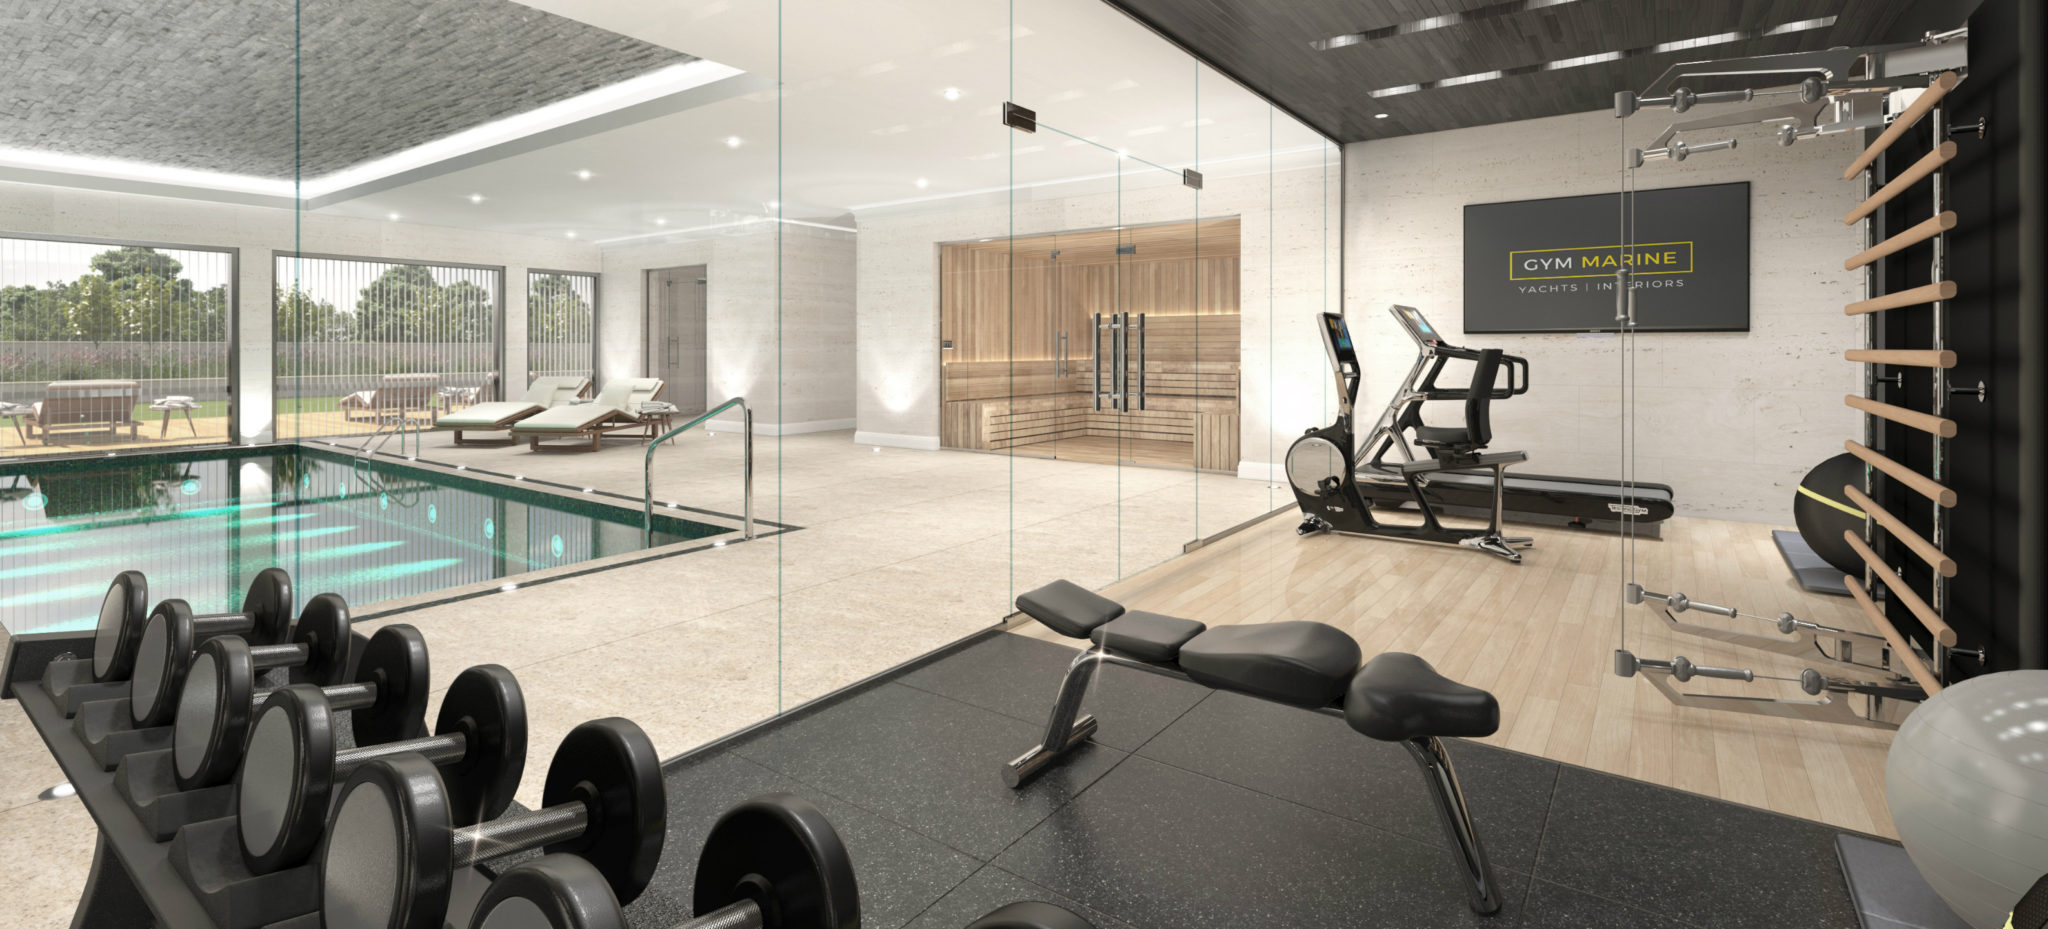 Superyacht gym home gym design buy gym equipment gym for Home gym interior design